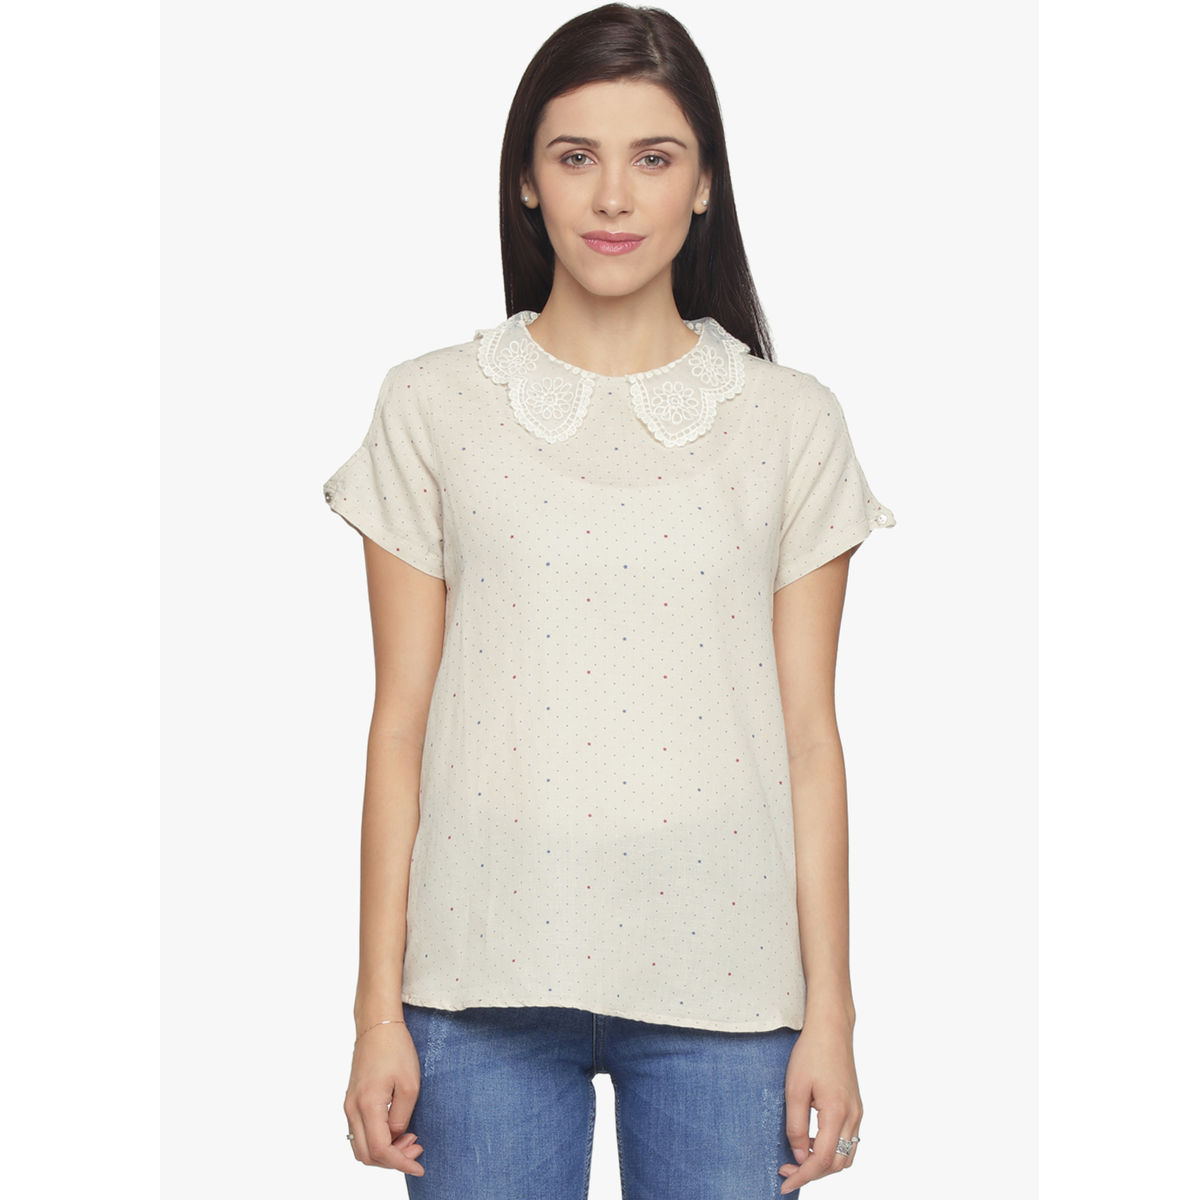 LINEN PETER PAN COLLAR CROP TOP